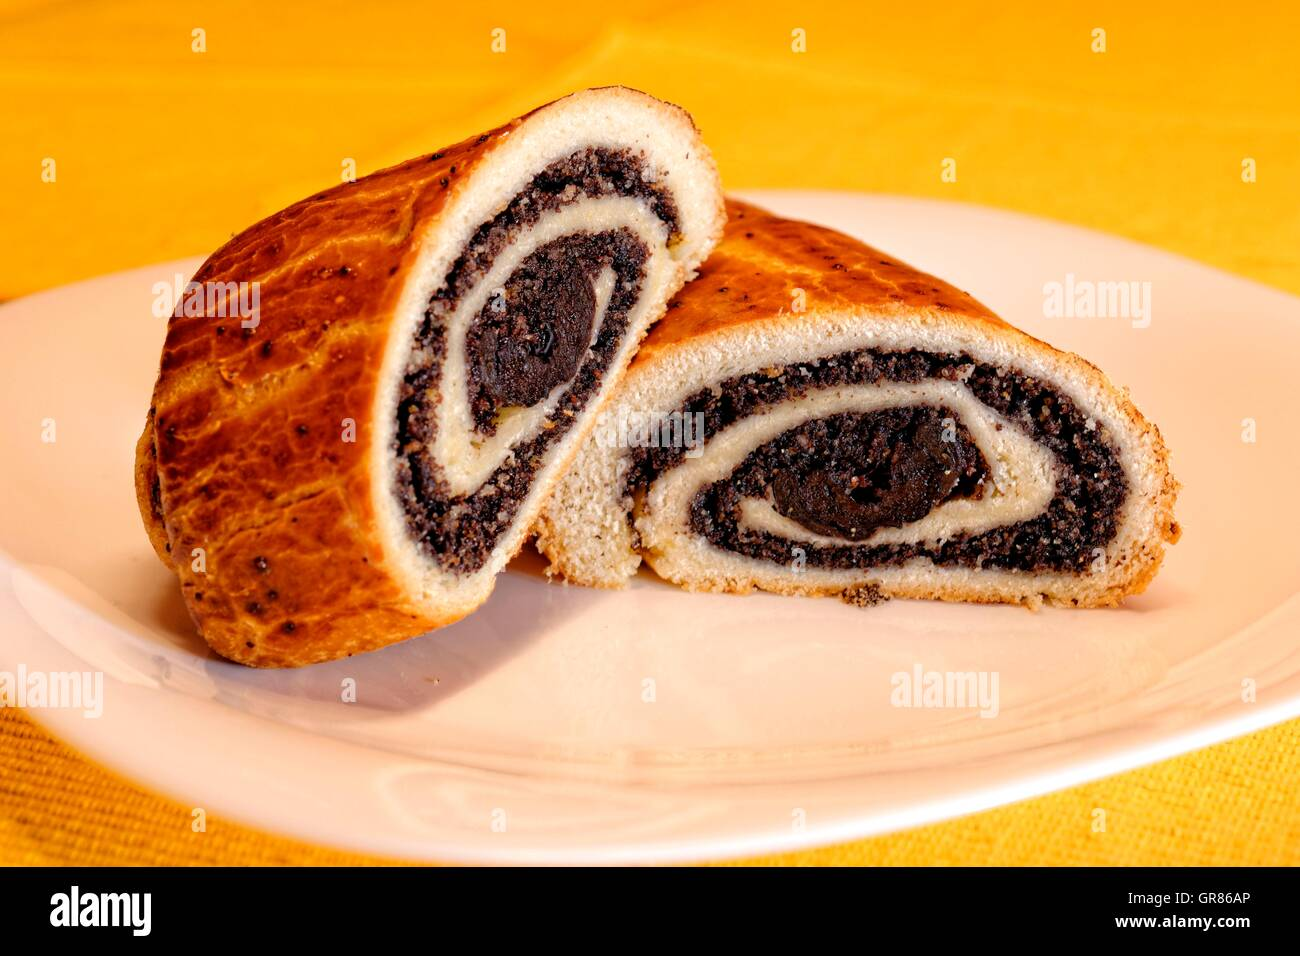 Poppy Beigli Or Poppy Seed Roll With Dried Plums, An Old-Fashioned ...